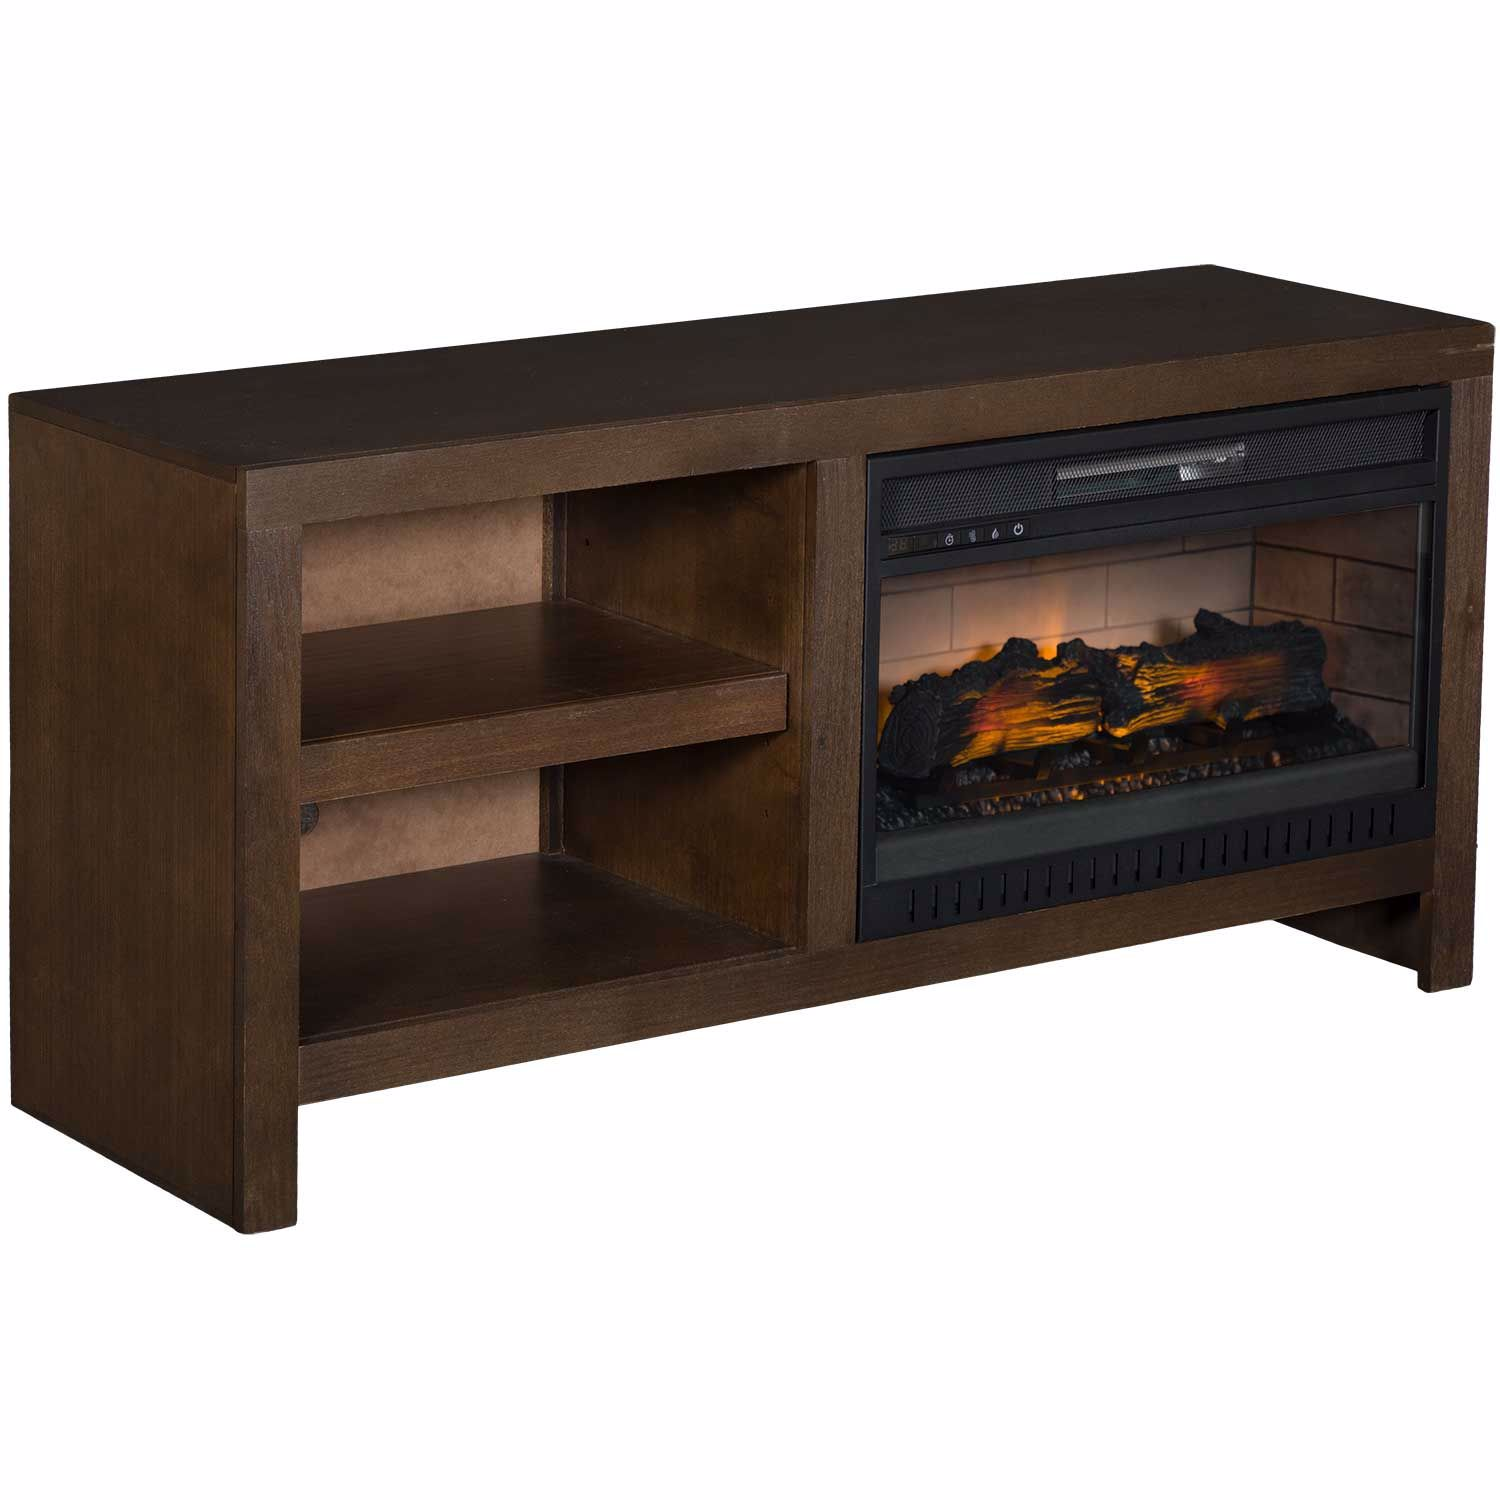 Picture of 52IN DEL MAR FIREPLACE, BROWN